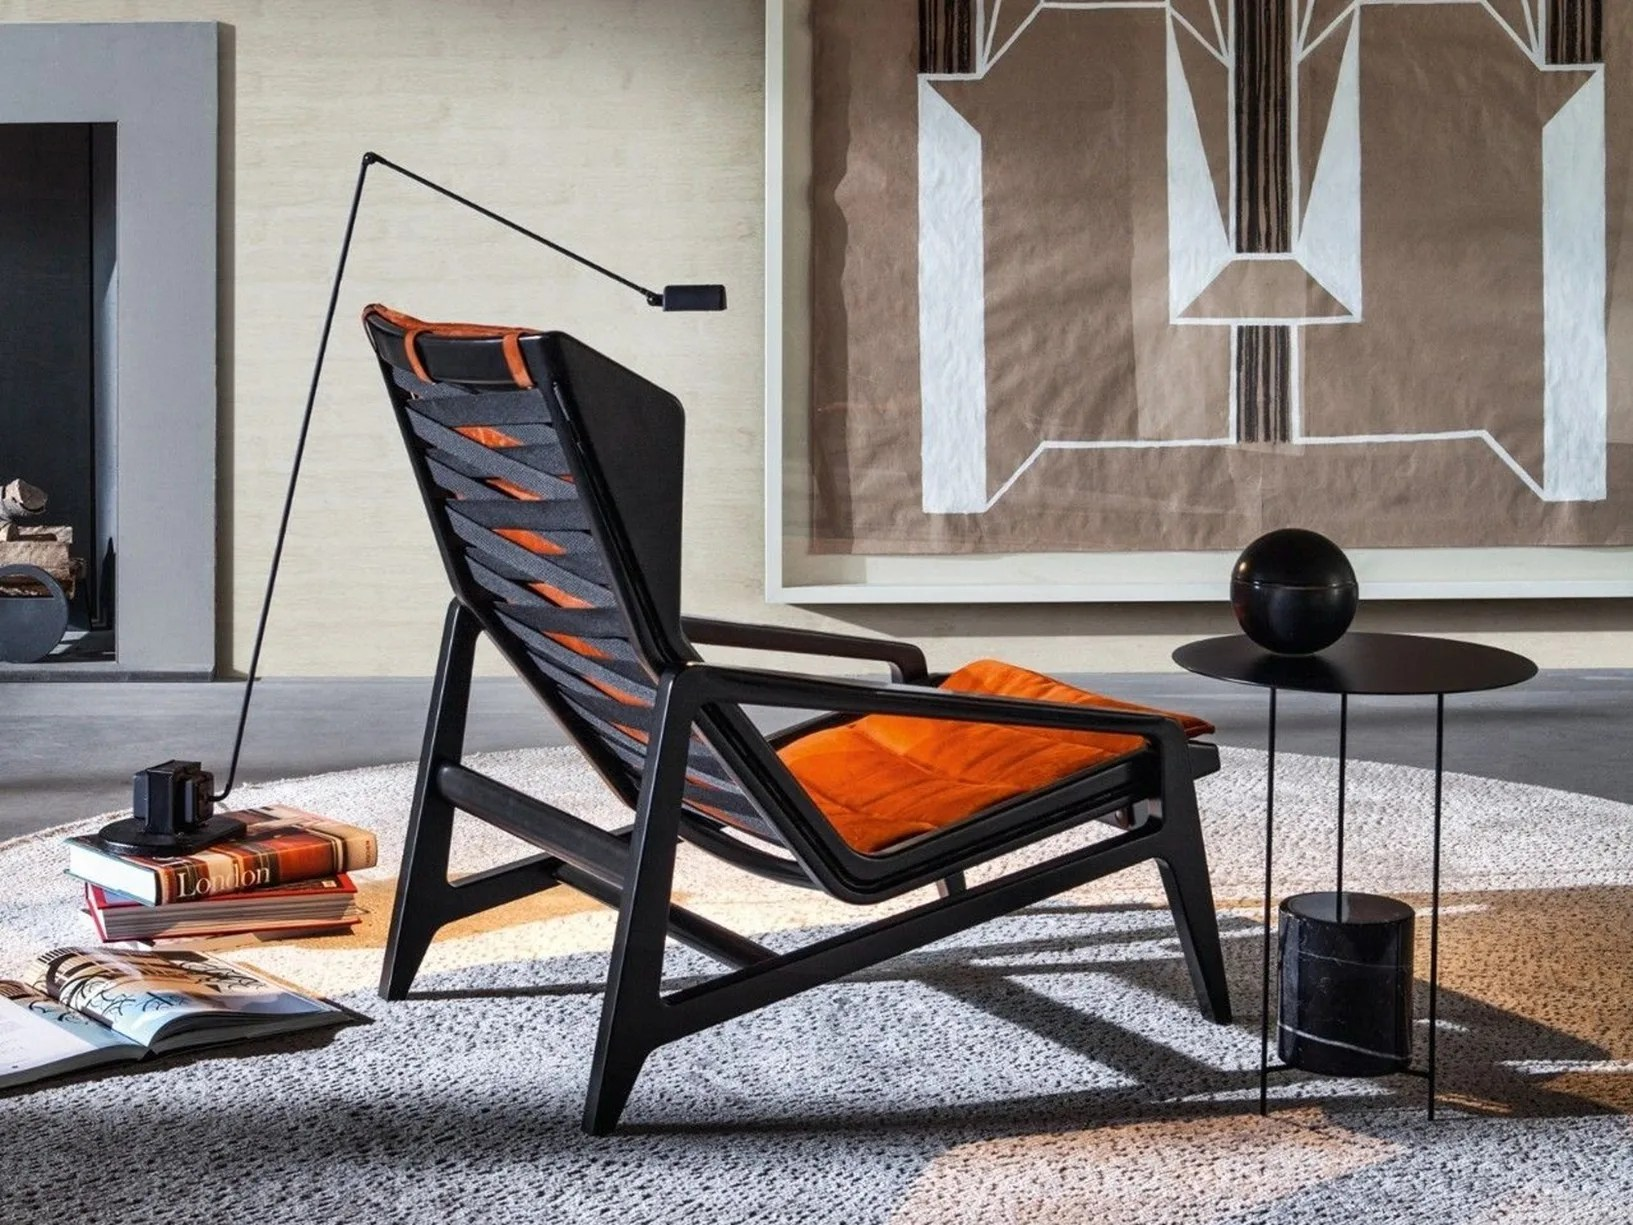 Molteni & C Sessel The Flagship Store Molteni C Dada Takes Part In The Paris